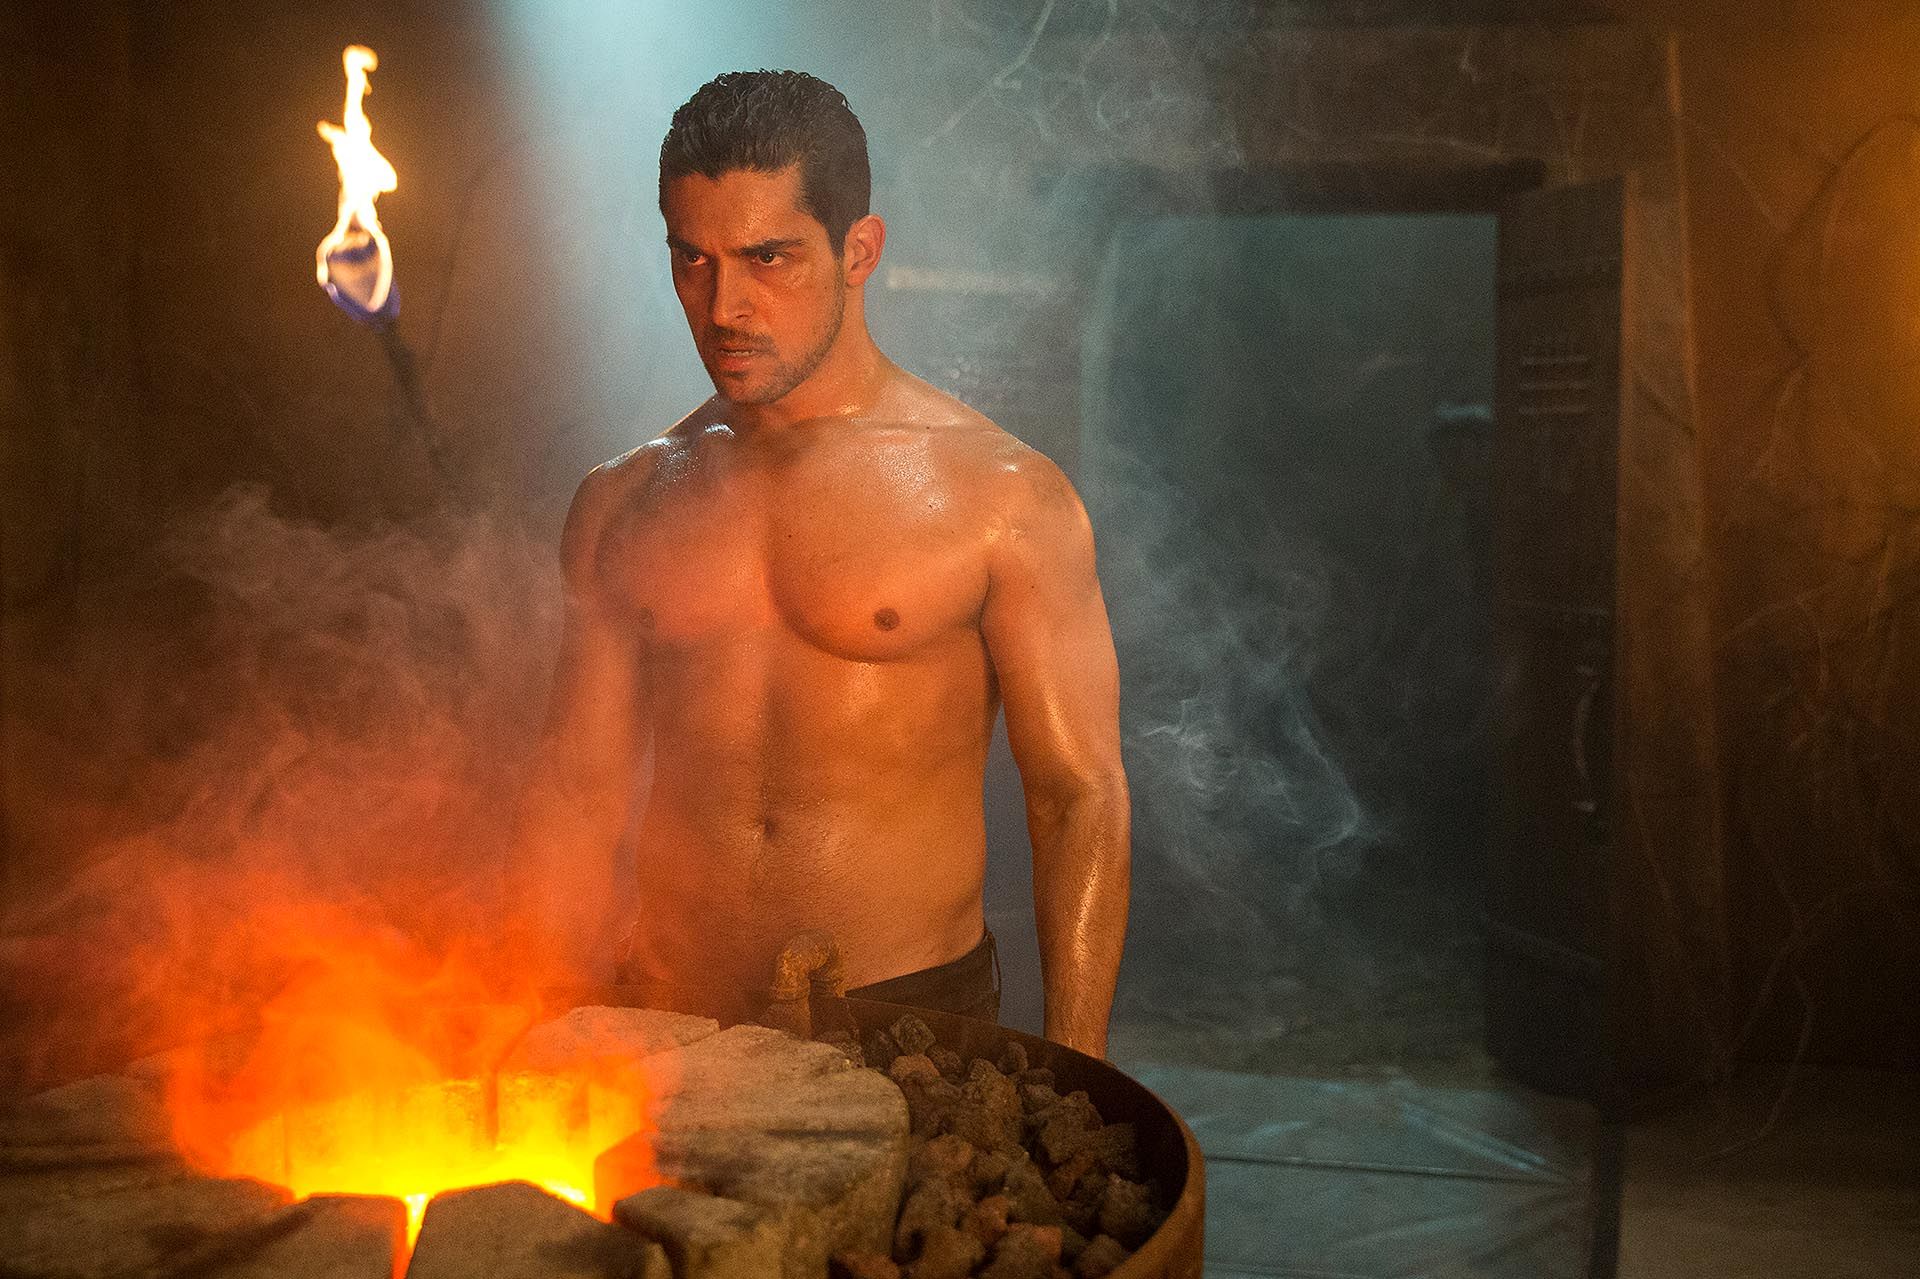 Wilmer Valderrama in From Dusk Till Dawn (TV Series) - photo by Ryan Green/Courtesy of El Rey/All rights reserved